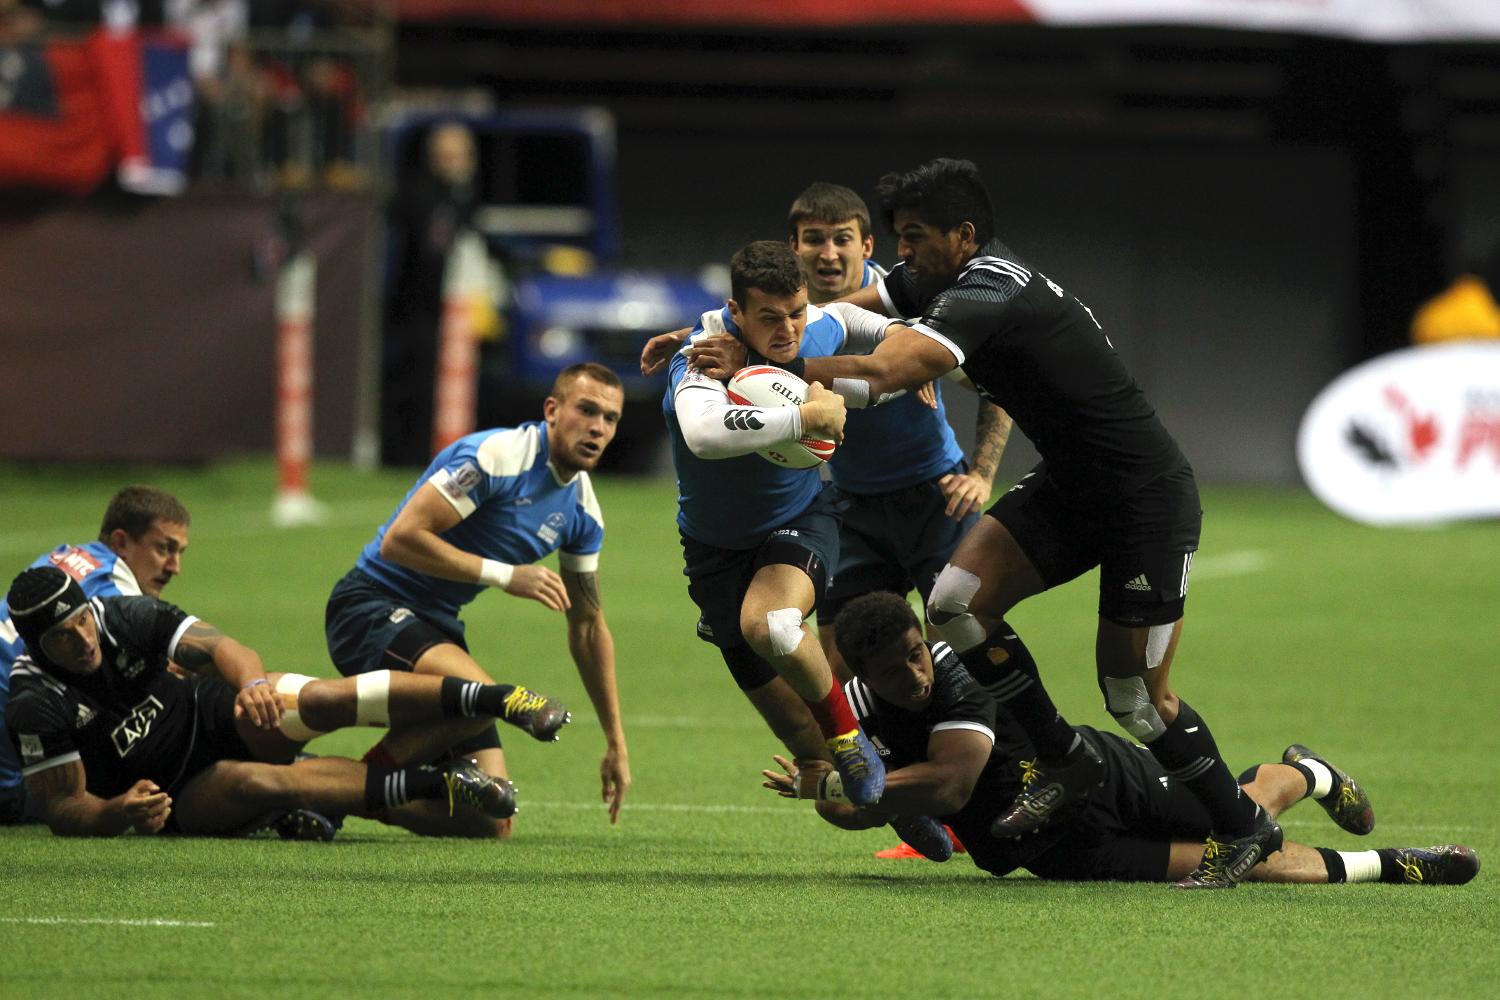 HSBC Canada Sevens - New Zealand v Russia